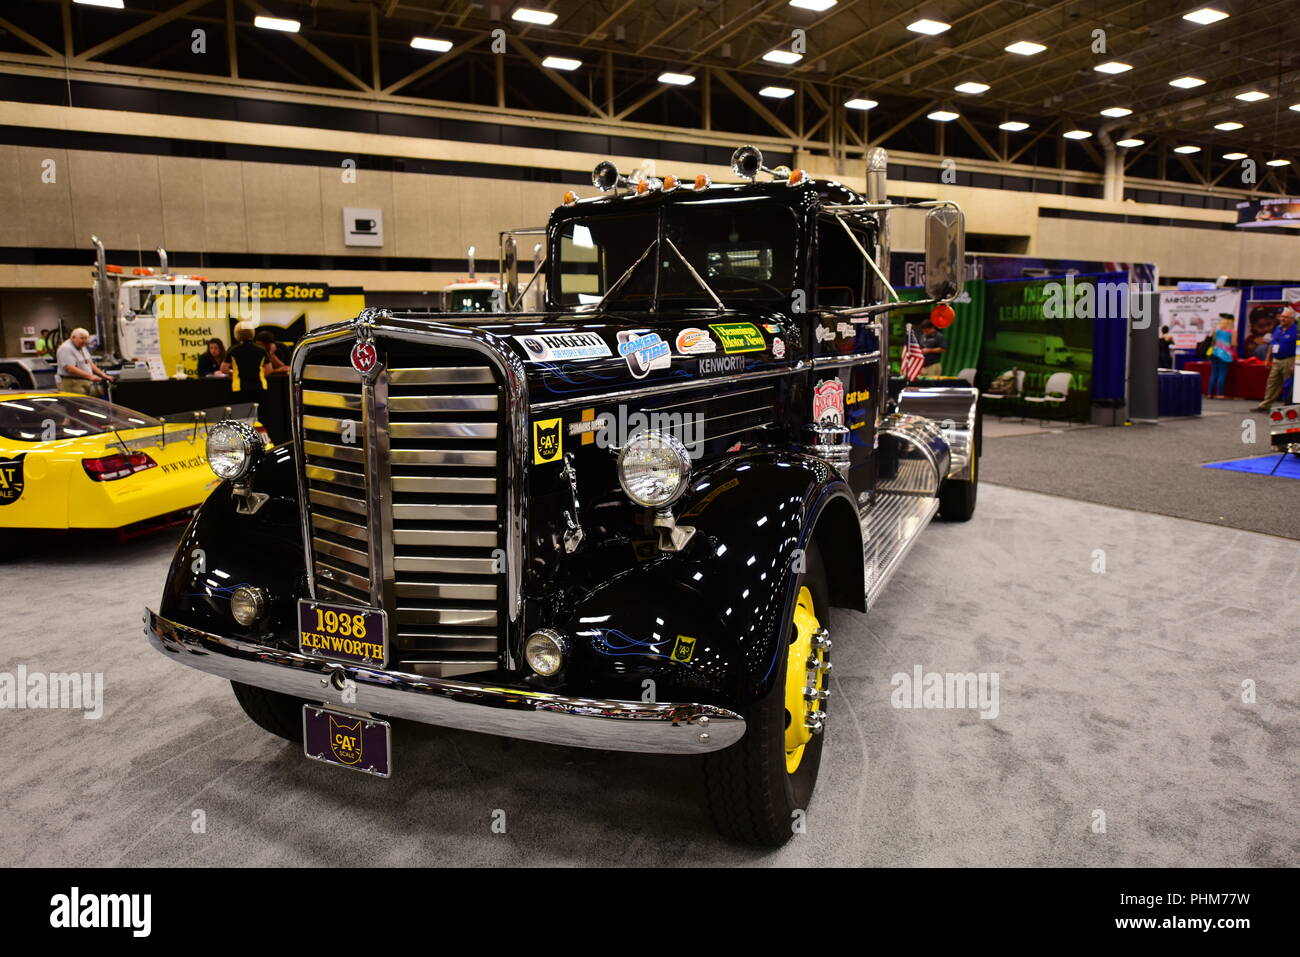 A black 1938 Kenworth semi truck is displayed at the 2018 Great American Truck Show in Dallas, Texas, USA. - Stock Image